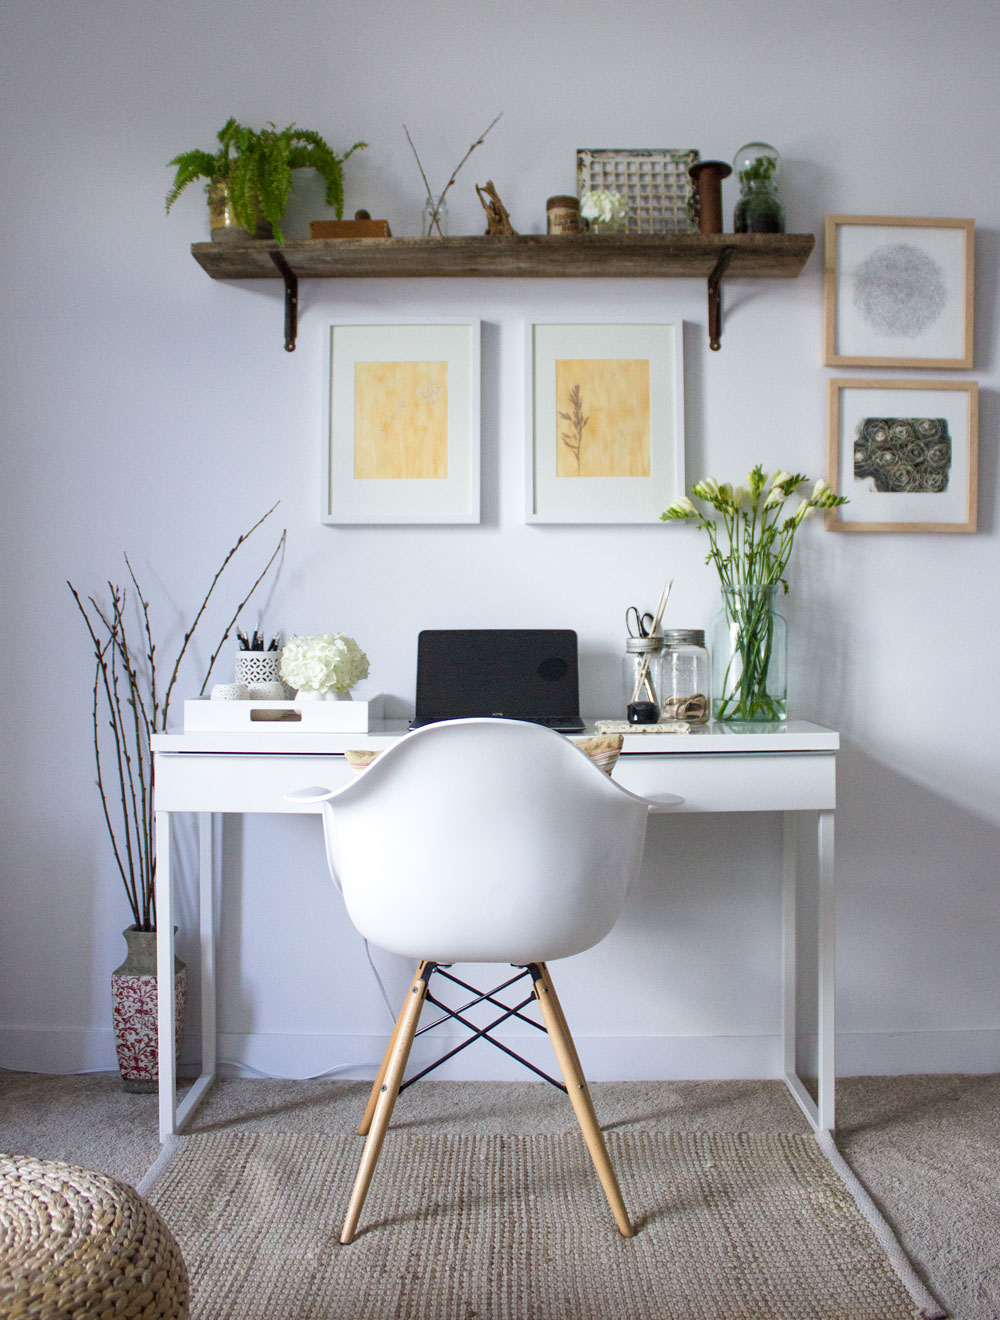 Easy ways to stylishly organize your home office